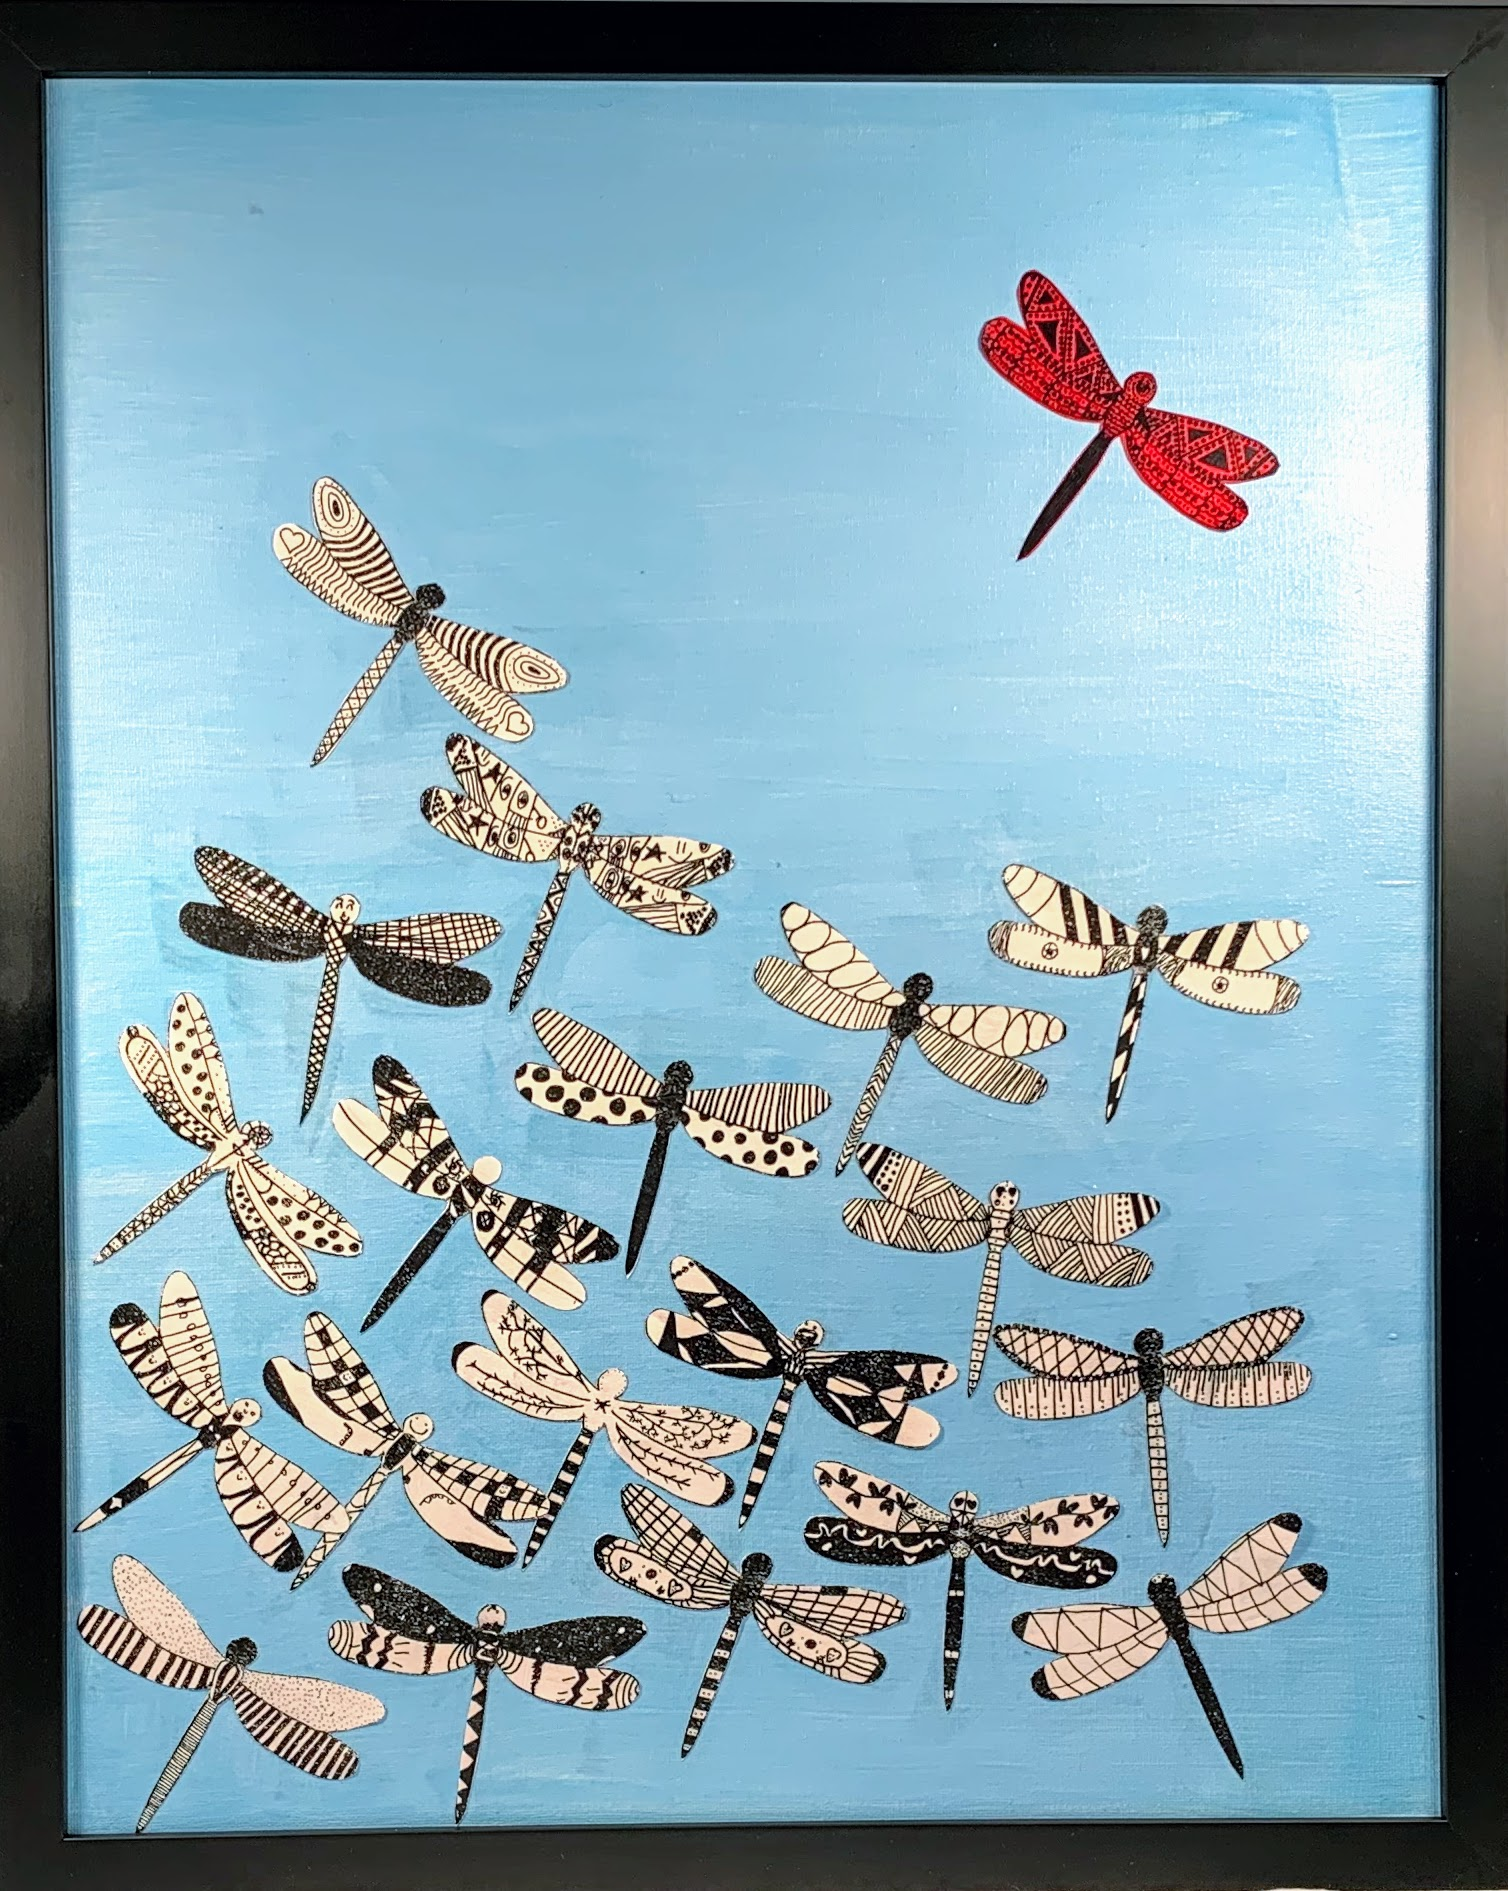 CUMBERLAND 4TH GRADE: Dragonflies - Hand decorated dragonflies take flight in these one of a kind framed canvas pieces created by our fourth graders. We were only able to photograph one as they came to us from the framers wrapped up for safe-keeping. They will all be on display at the Bay Ball!